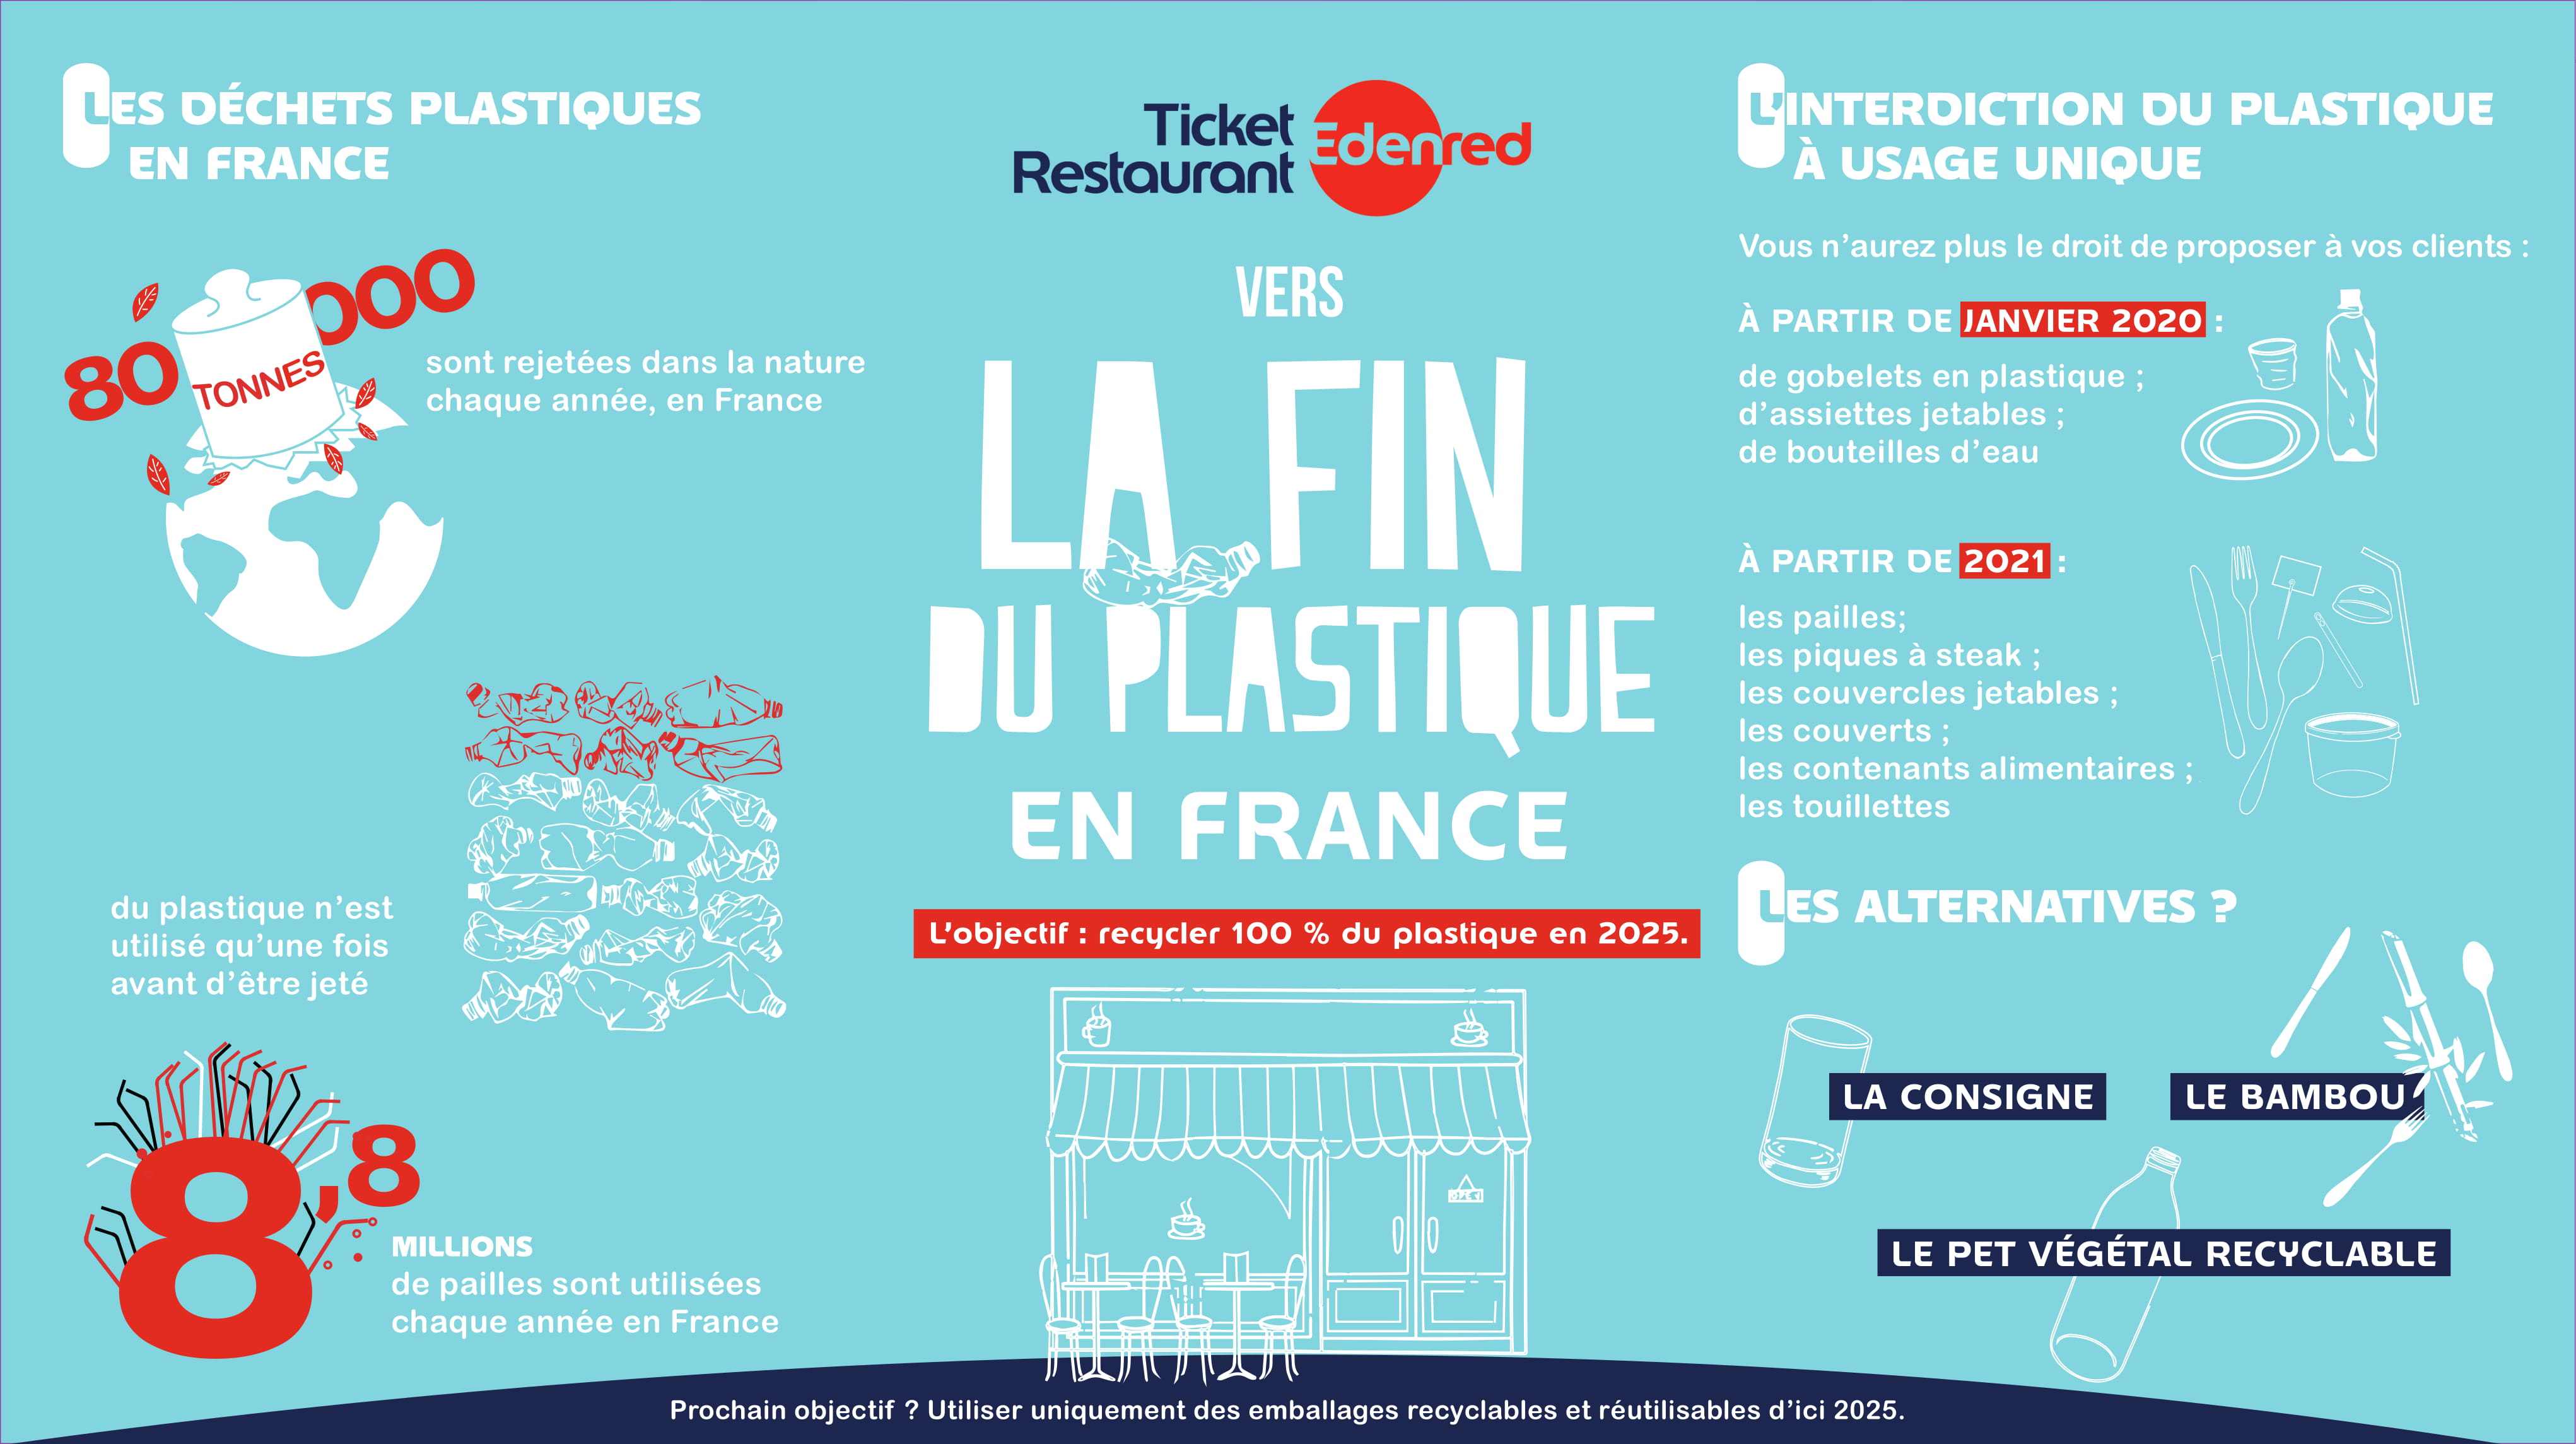 l'interdiction du plastique en France